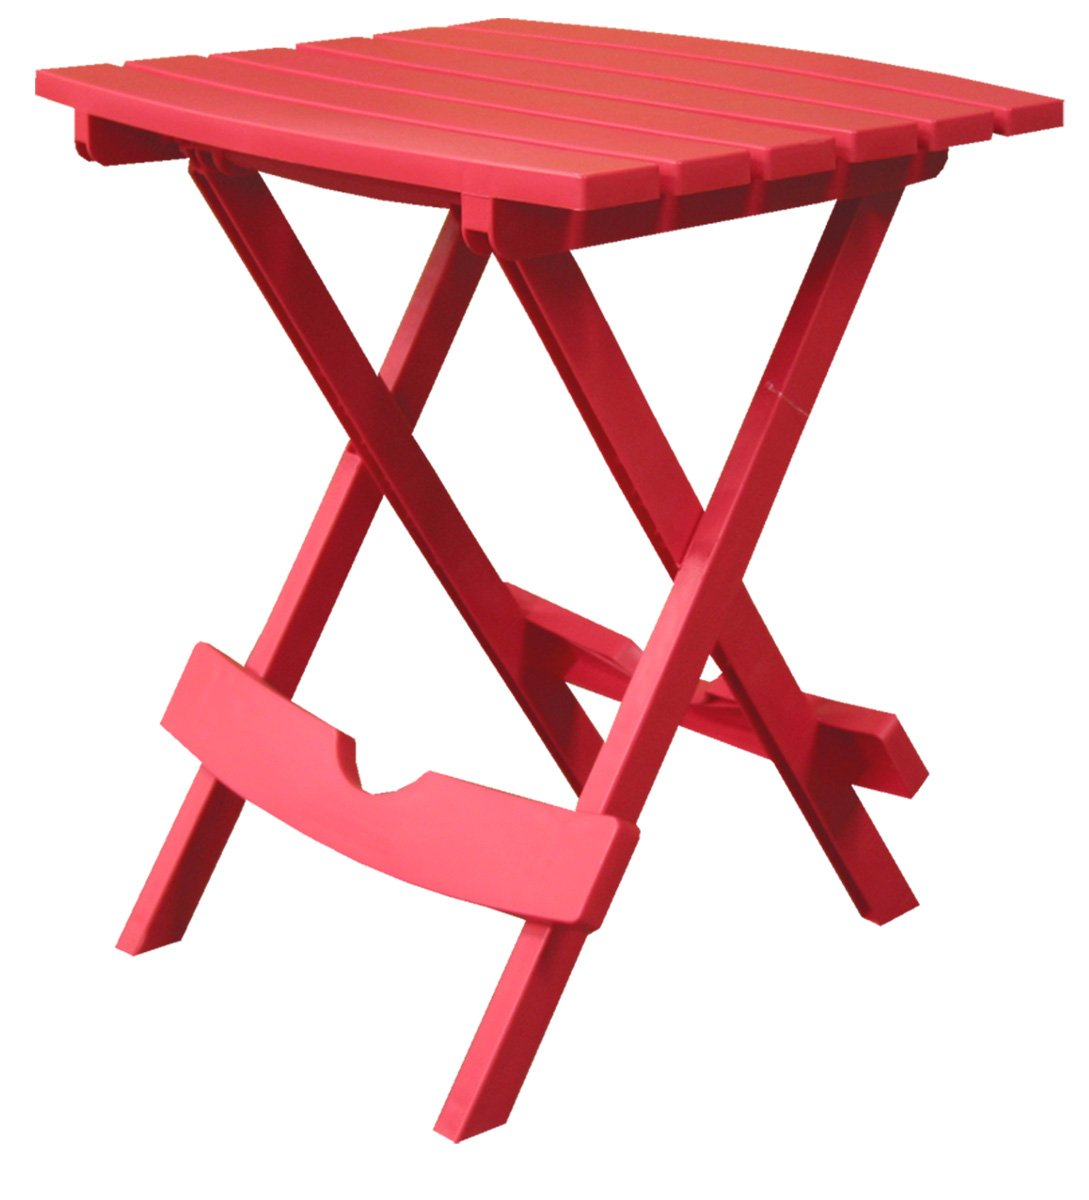 Amazon.com : Adams Manufacturing 8500 26 3700 Plastic Quik Fold Side Table,  Cherry Red : Patio Side Tables : Garden U0026 Outdoor